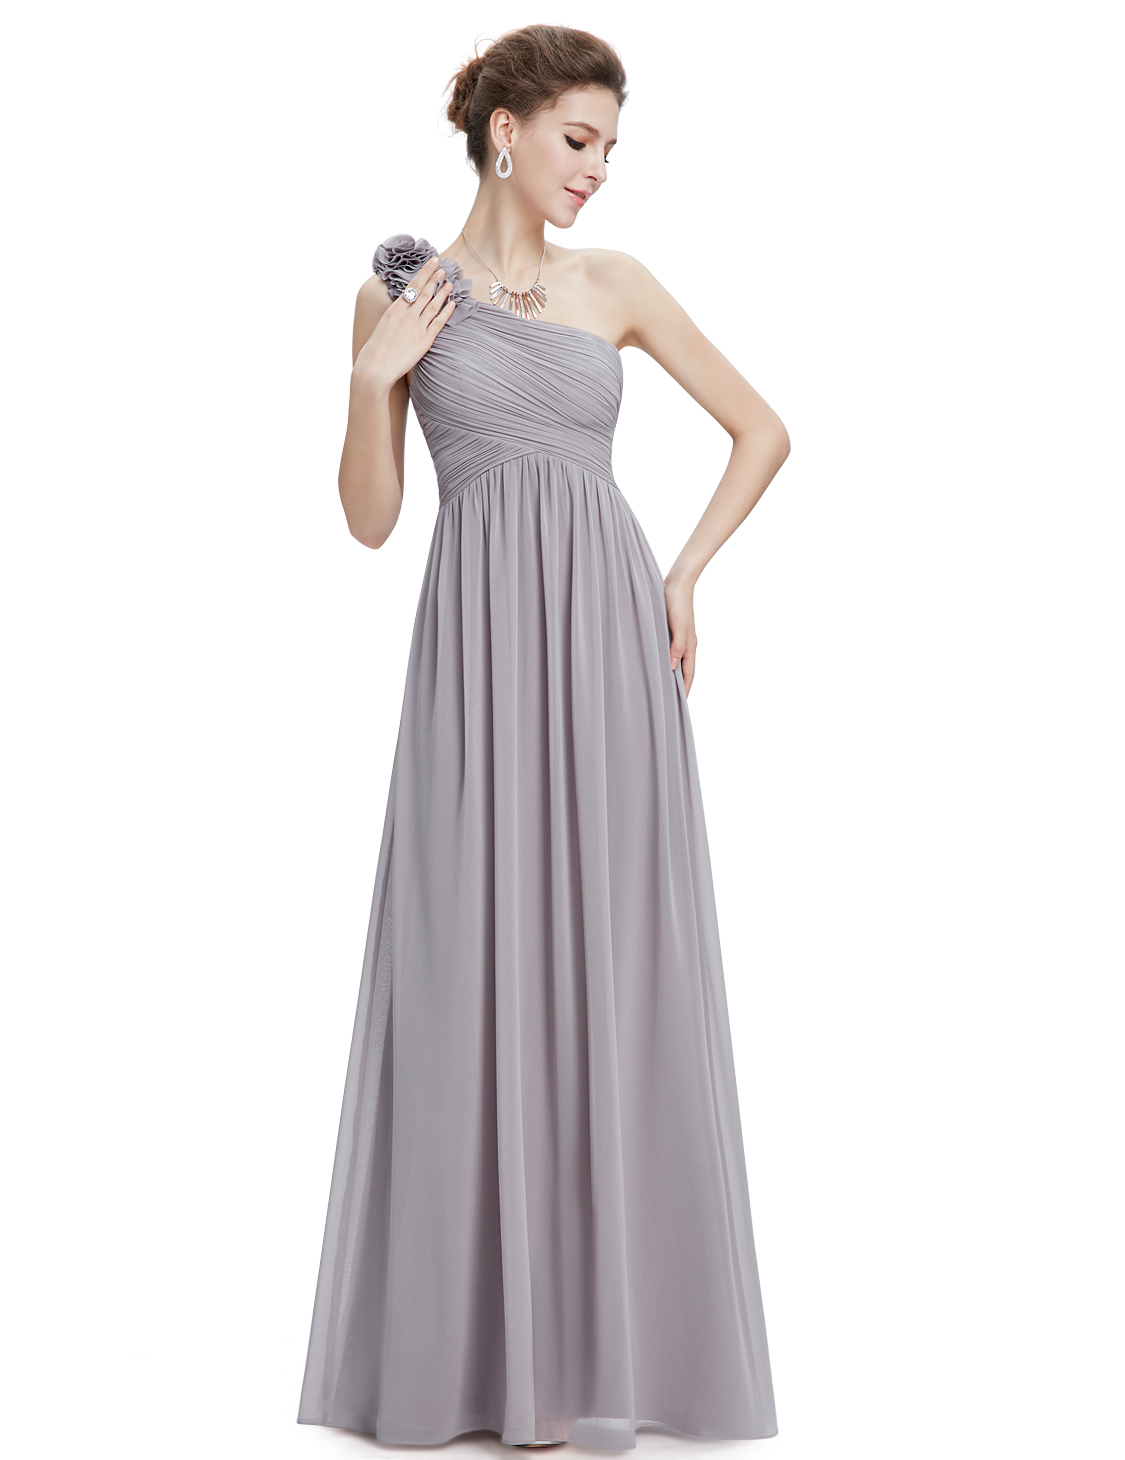 One Shoulder Dresses: Find your perfect dress featuring tons of styles and fashions from palmmetrf1.ga Your Online Women's Clothing Store! Get 5% in rewards with Club O!